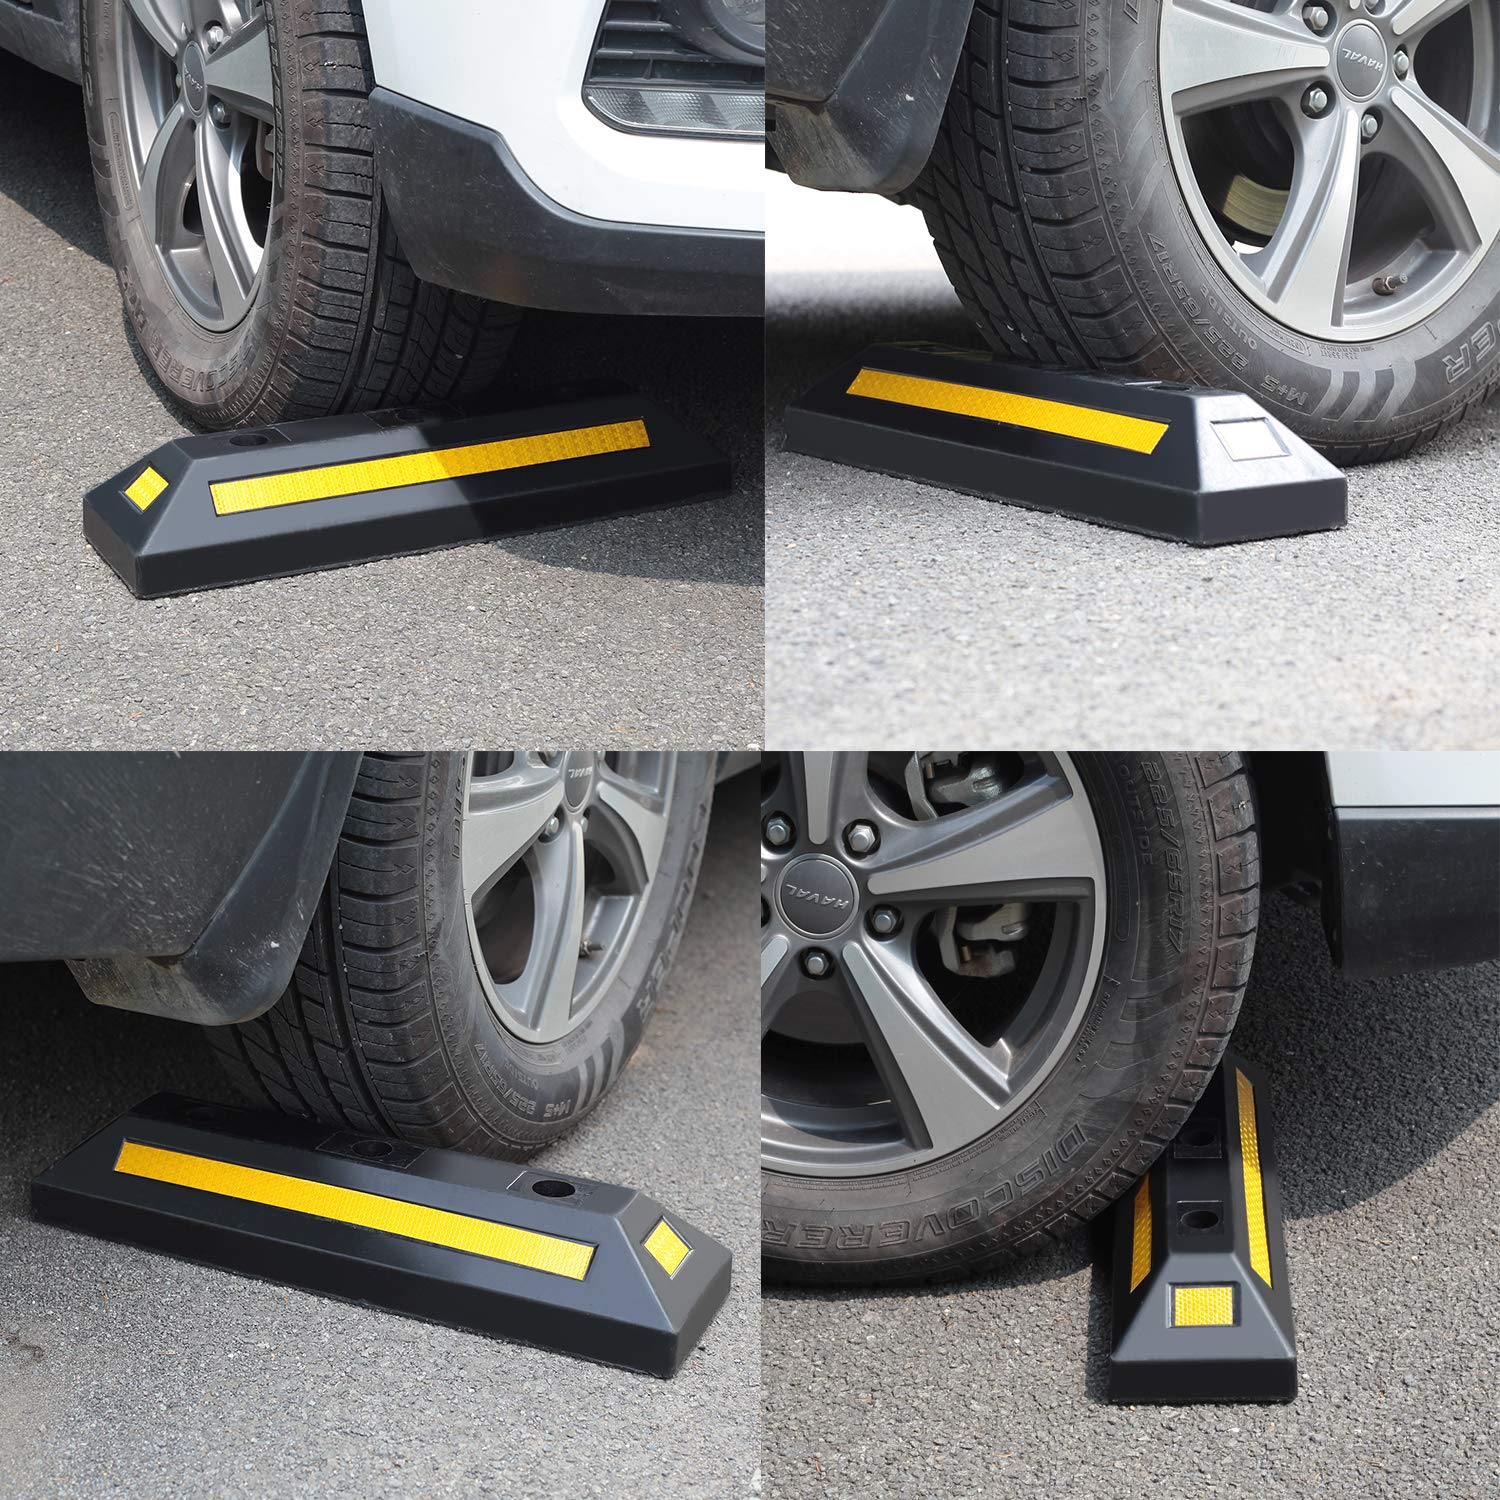 2 Pack Heavy Duty Rubber Parking Blocks Wheel Stop for Car Garage Parks Wheel Stop Stoppers Professional Grade Parking Rubber Block Curb w/Yellow Refective Stripes for Truck RV, Trailer 21.25''(L) by Reliancer (Image #7)